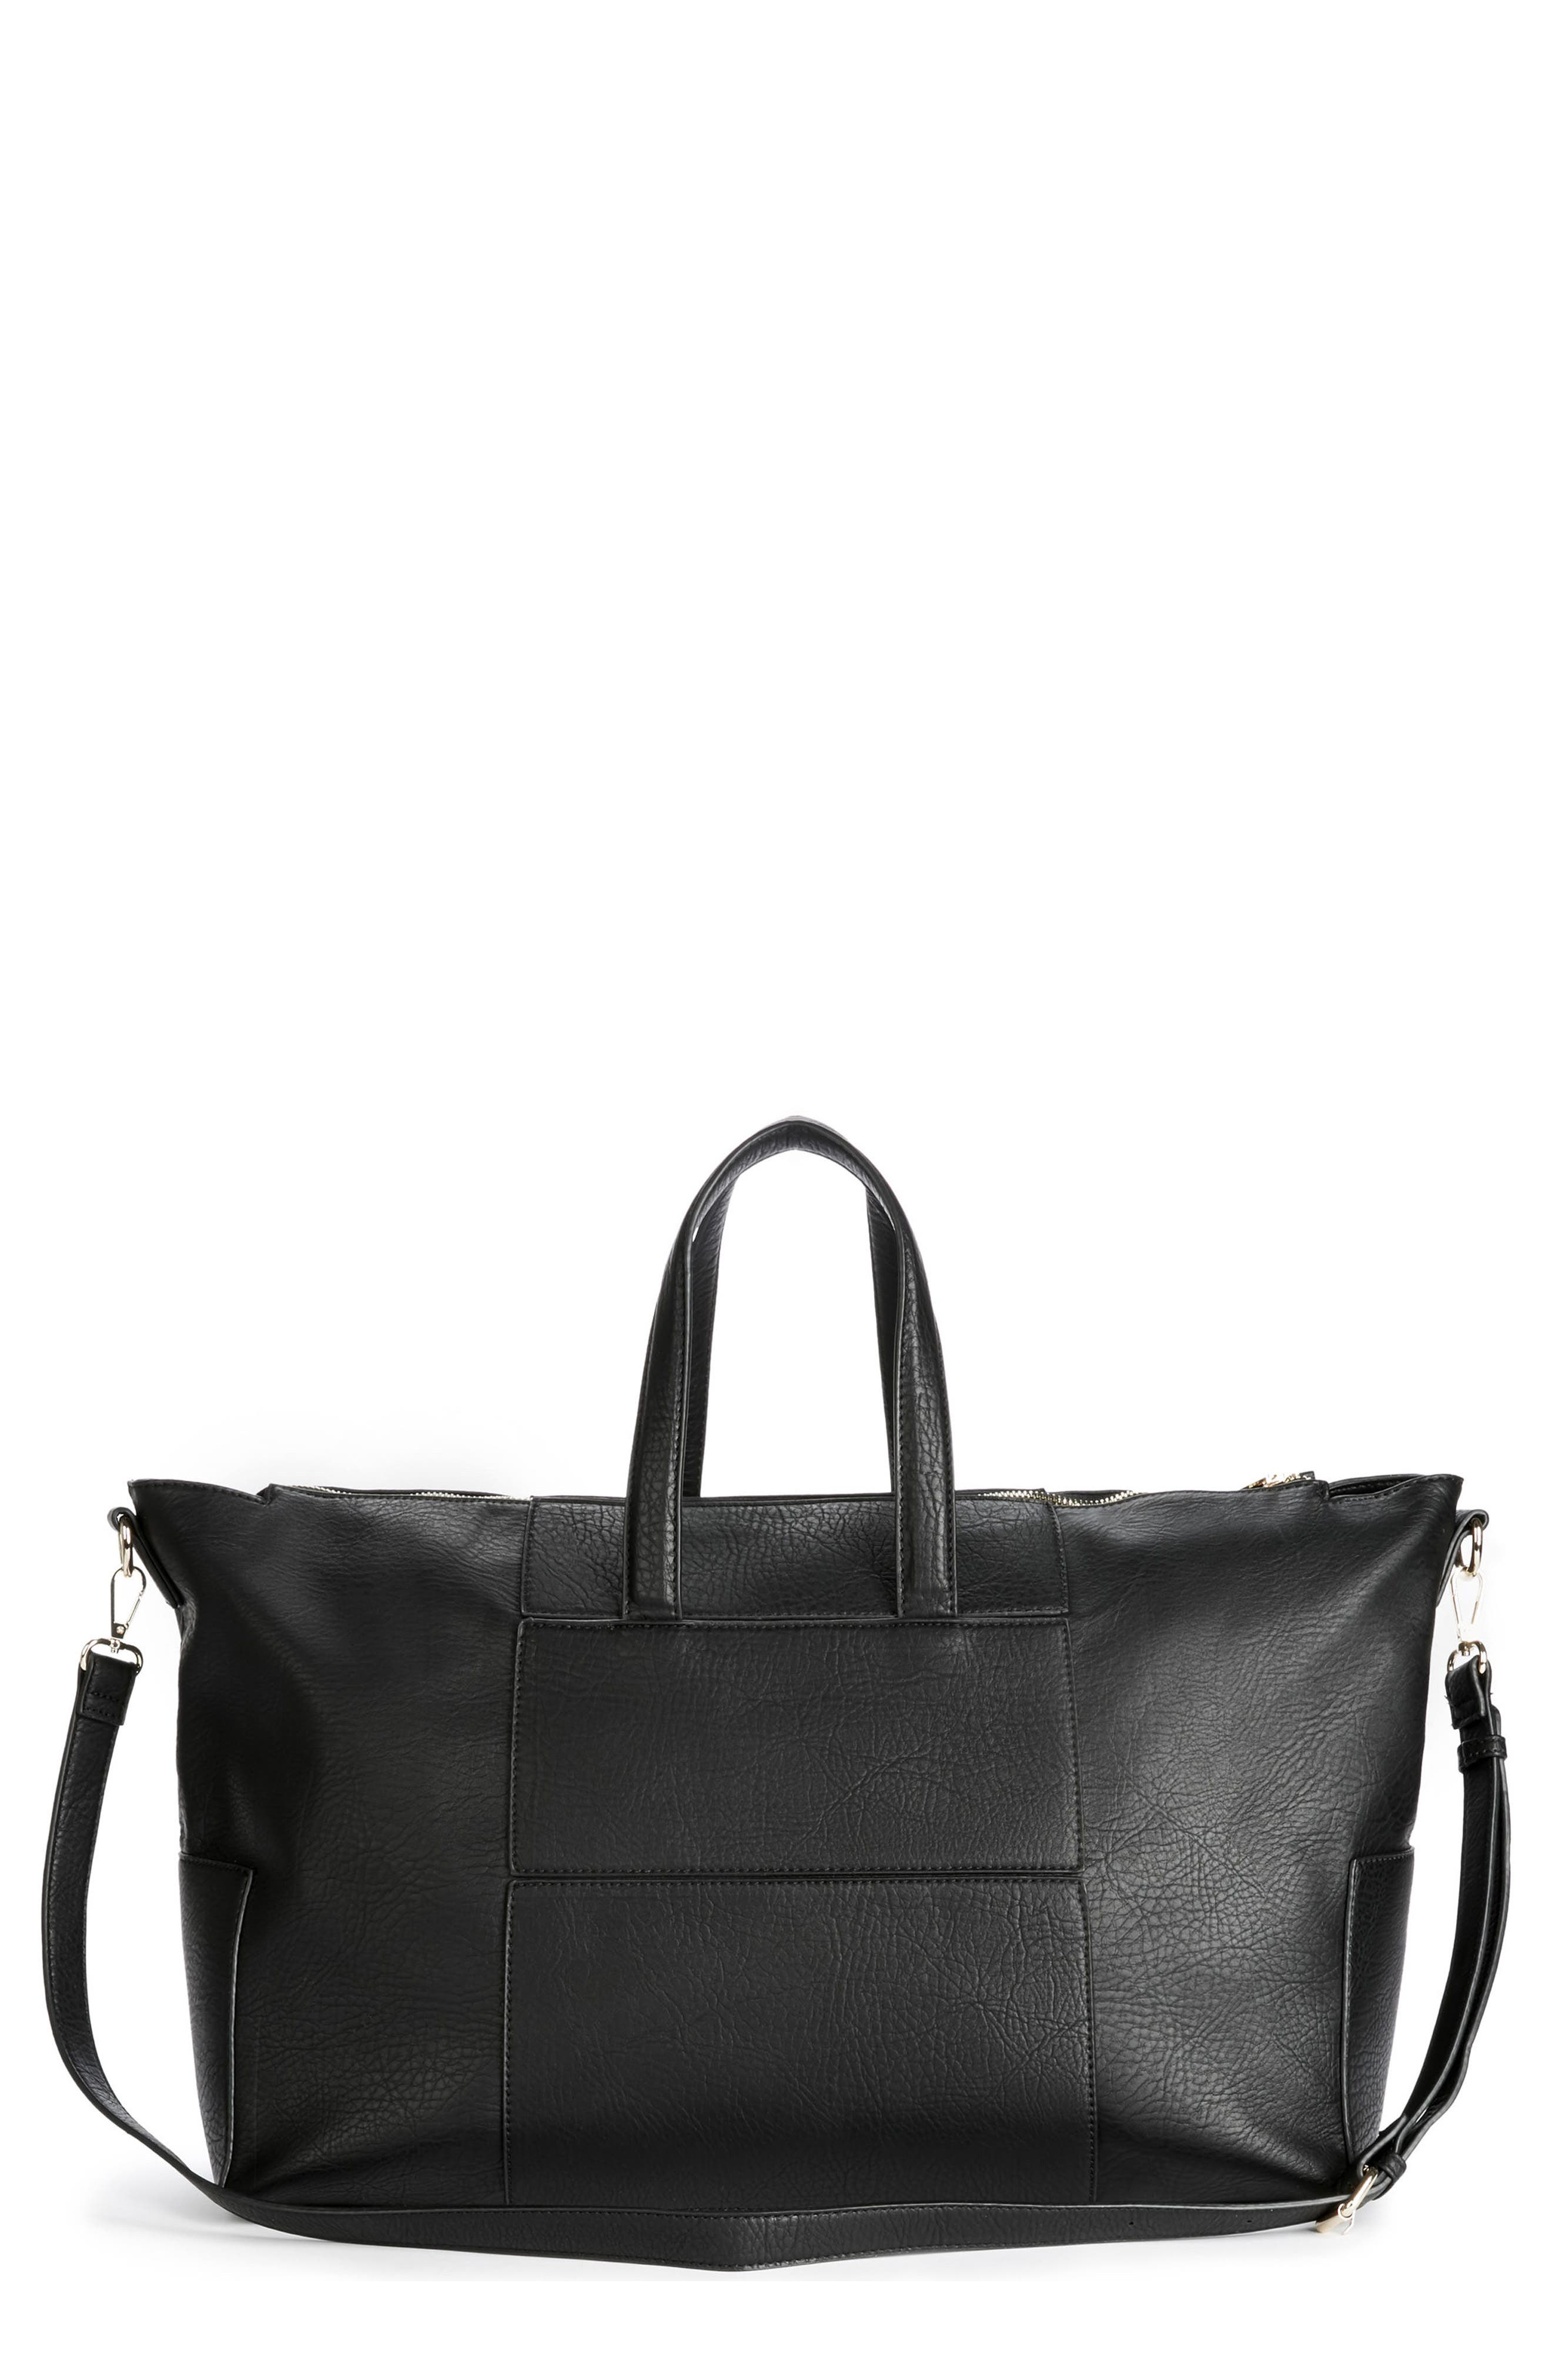 Cory Faux Leather Travel Tote,                             Main thumbnail 1, color,                             001